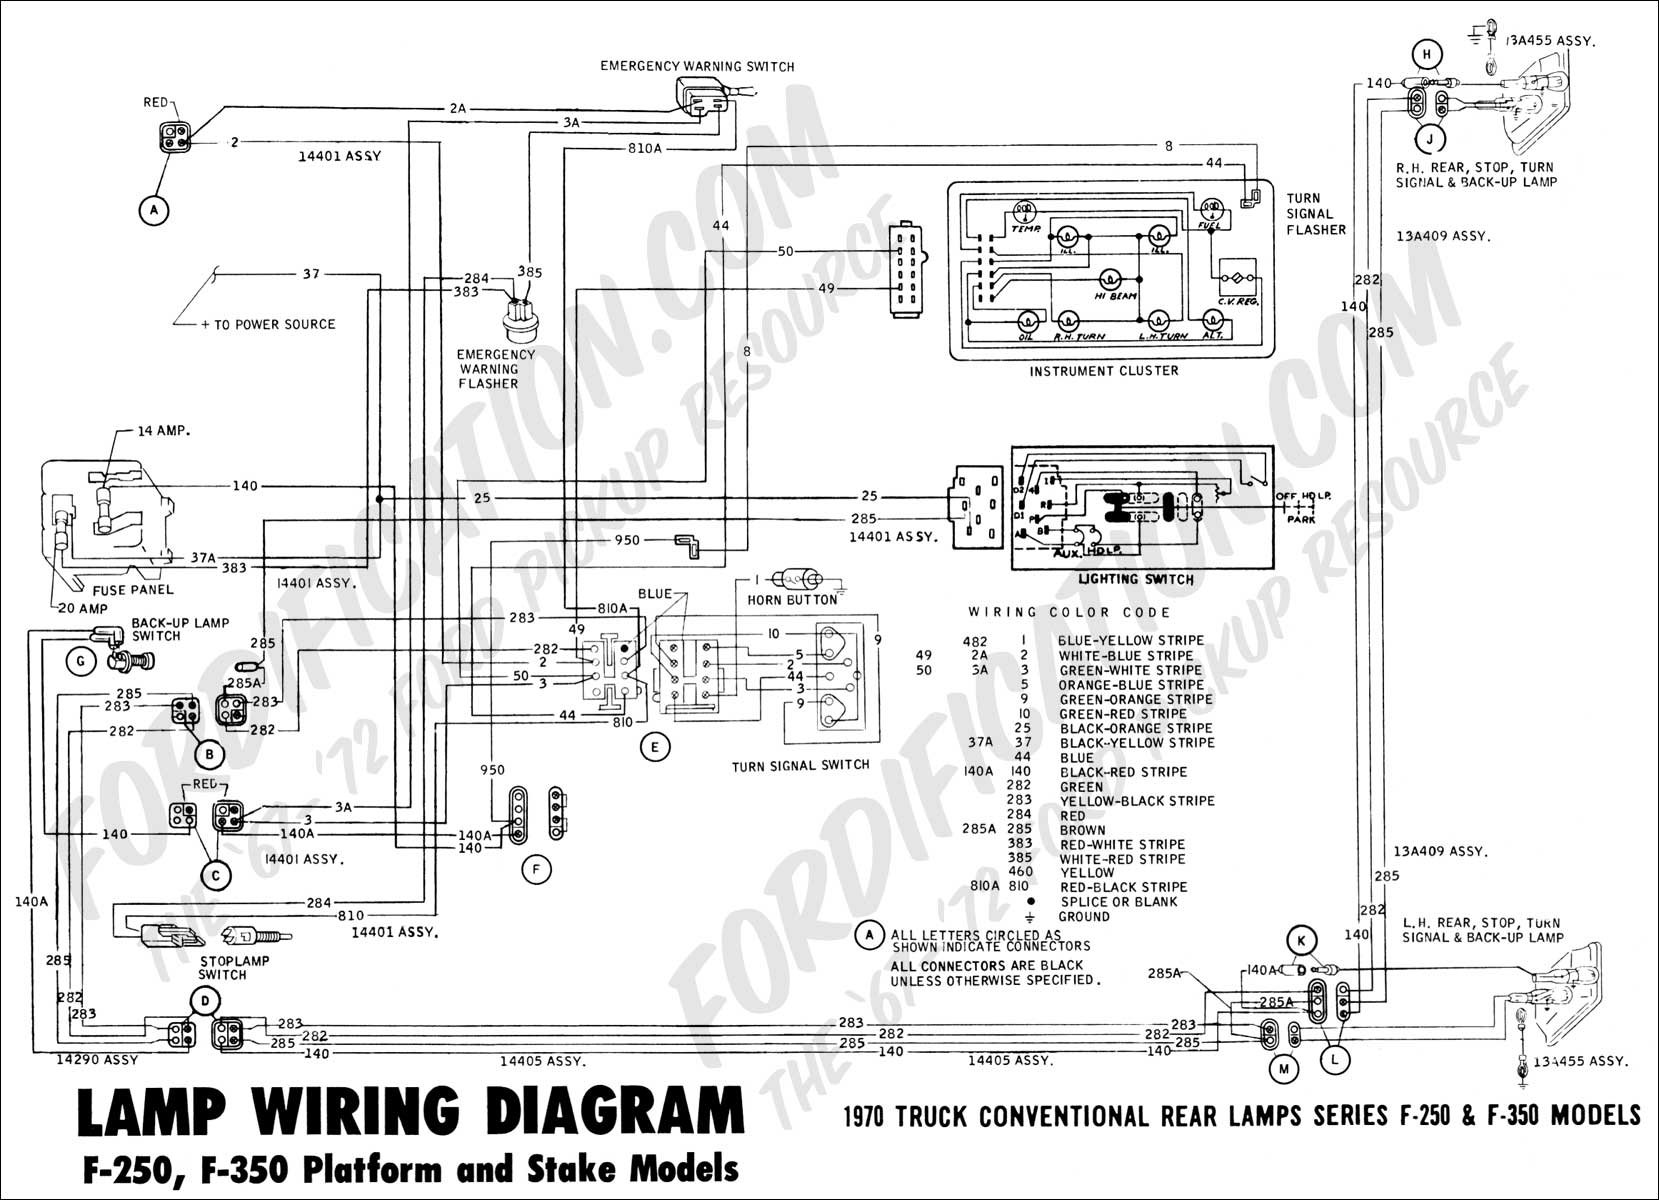 Ford F550 Diesel Fuse Panel Diagram Simple Guide About Wiring 99 Eclipse Box Images Gallery Truck Technical Drawings And Schematics Section H